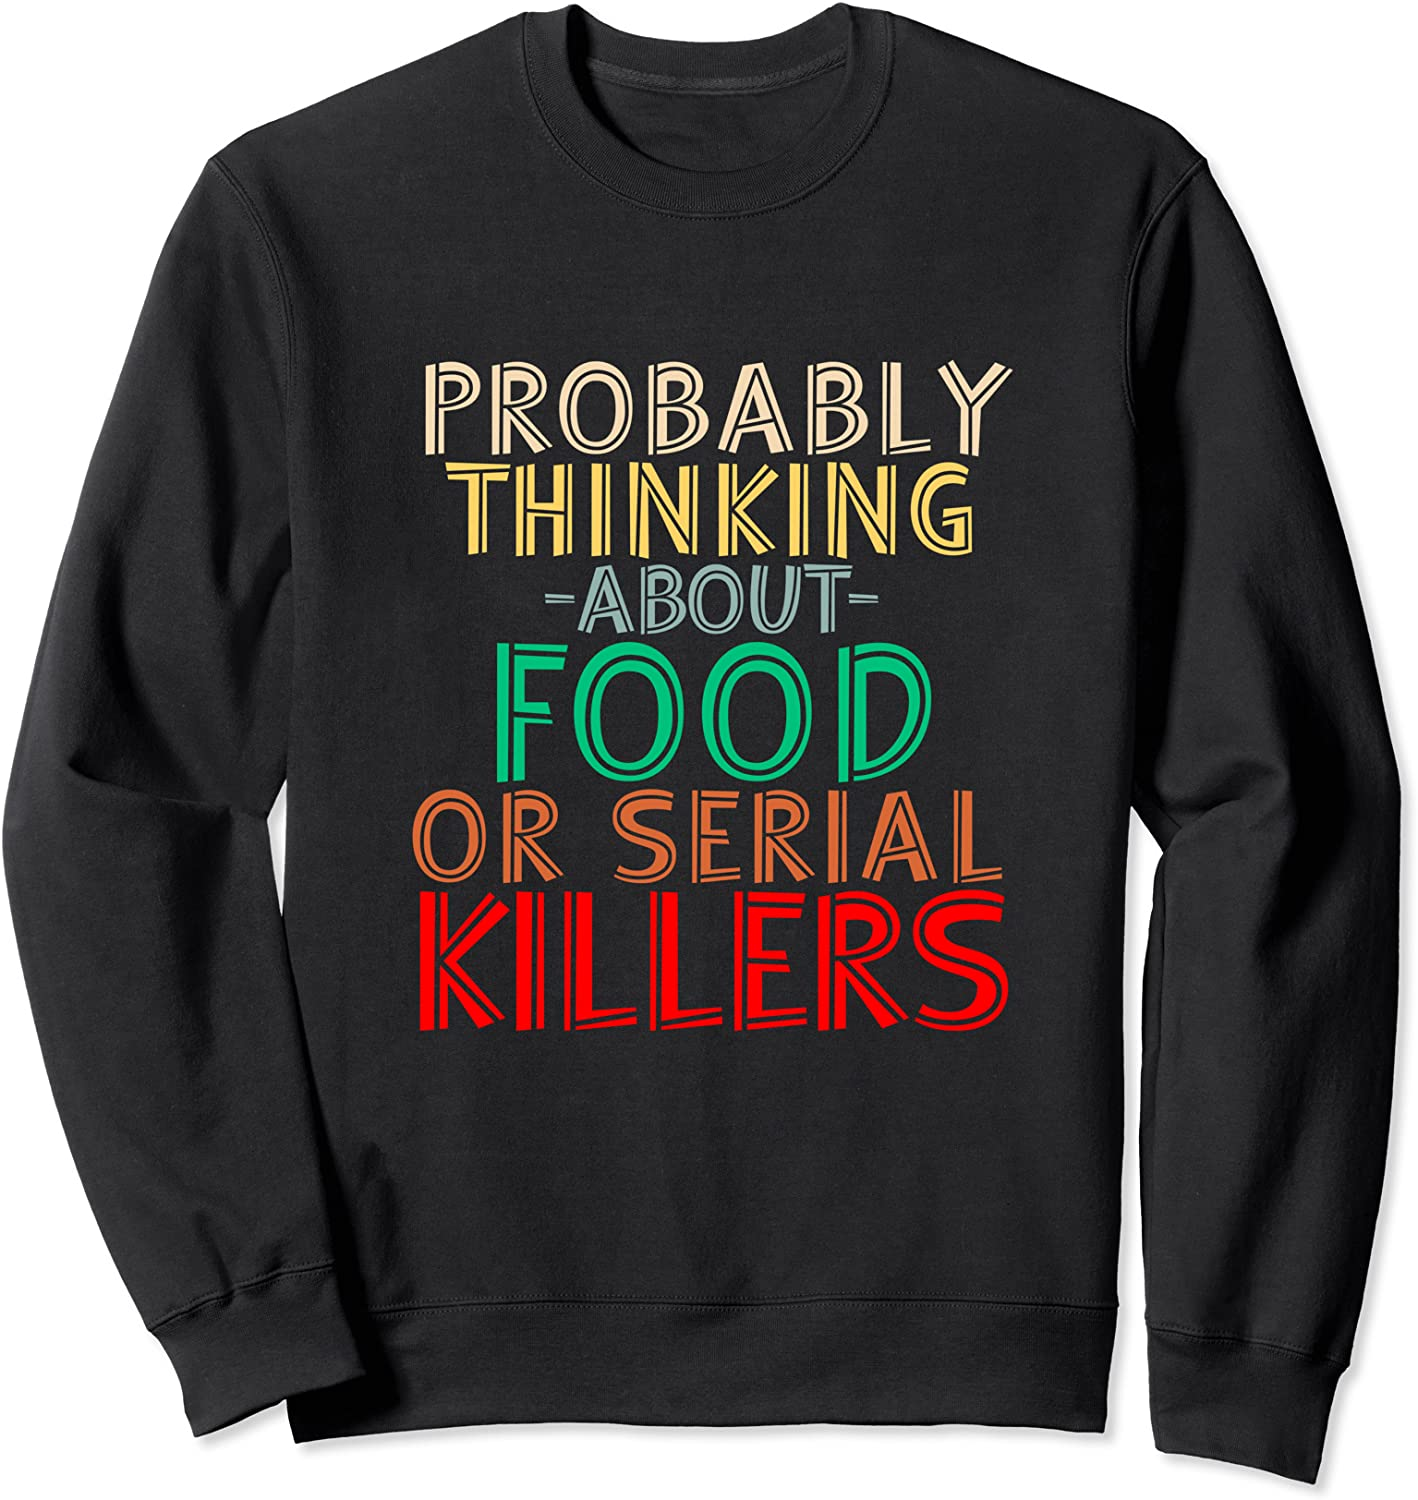 Probably Thinking About Food or Serial Killers -Funny Saying Sweatshirt